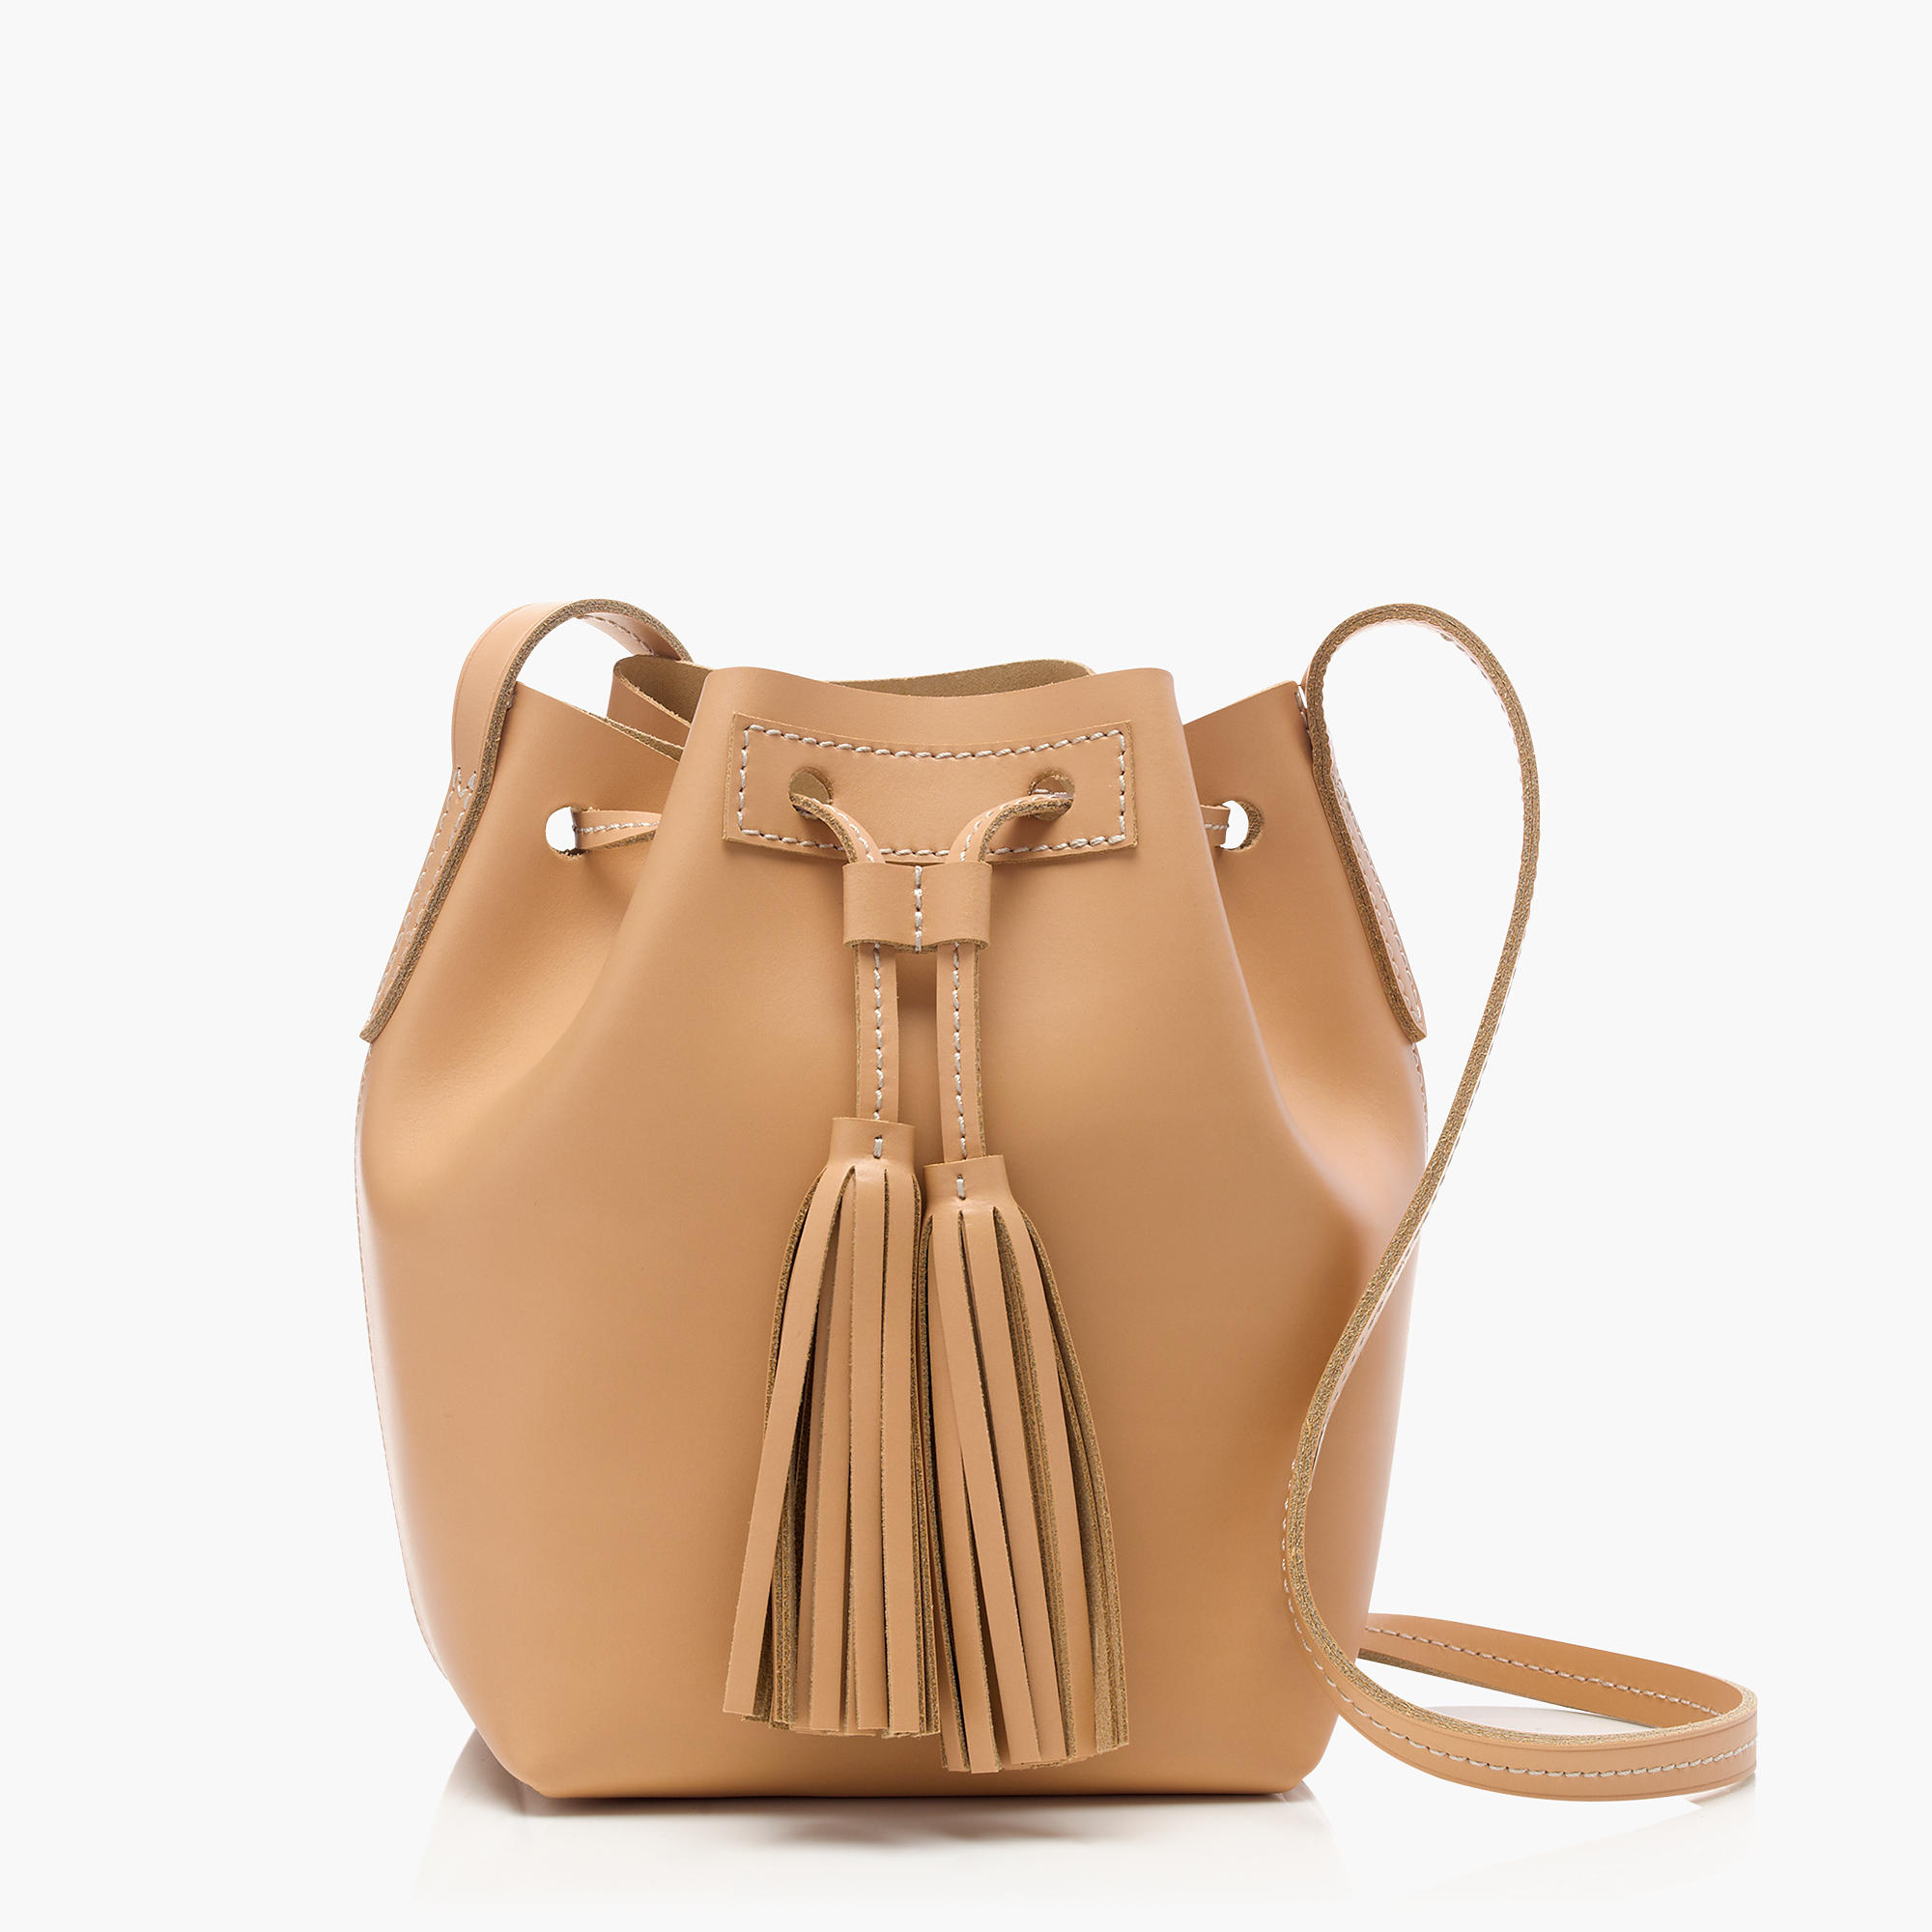 J.Crew Mini Bucket Bag